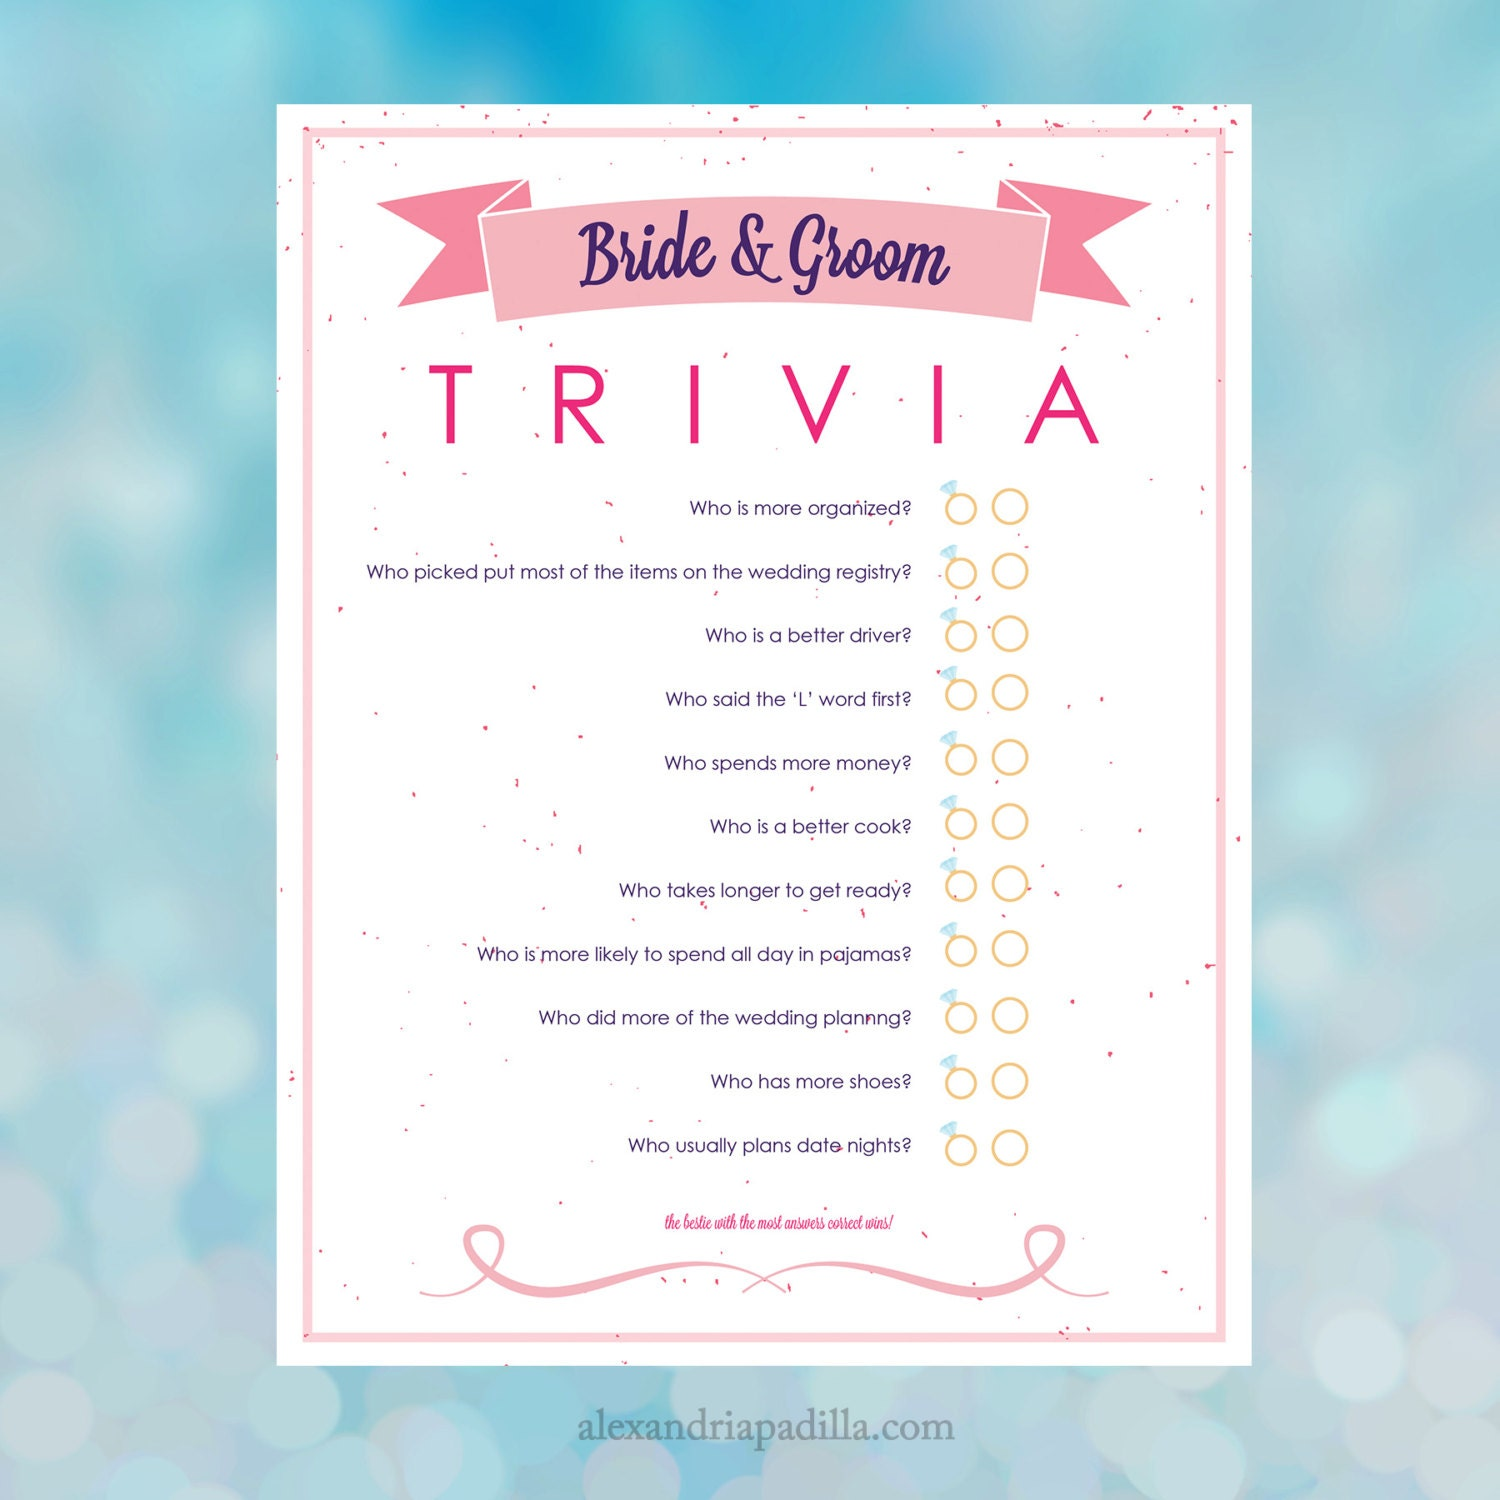 Bride And Groom Questionnaire: Bride And Groom Trivia Bridal Shower Game 8.5x11 Instant